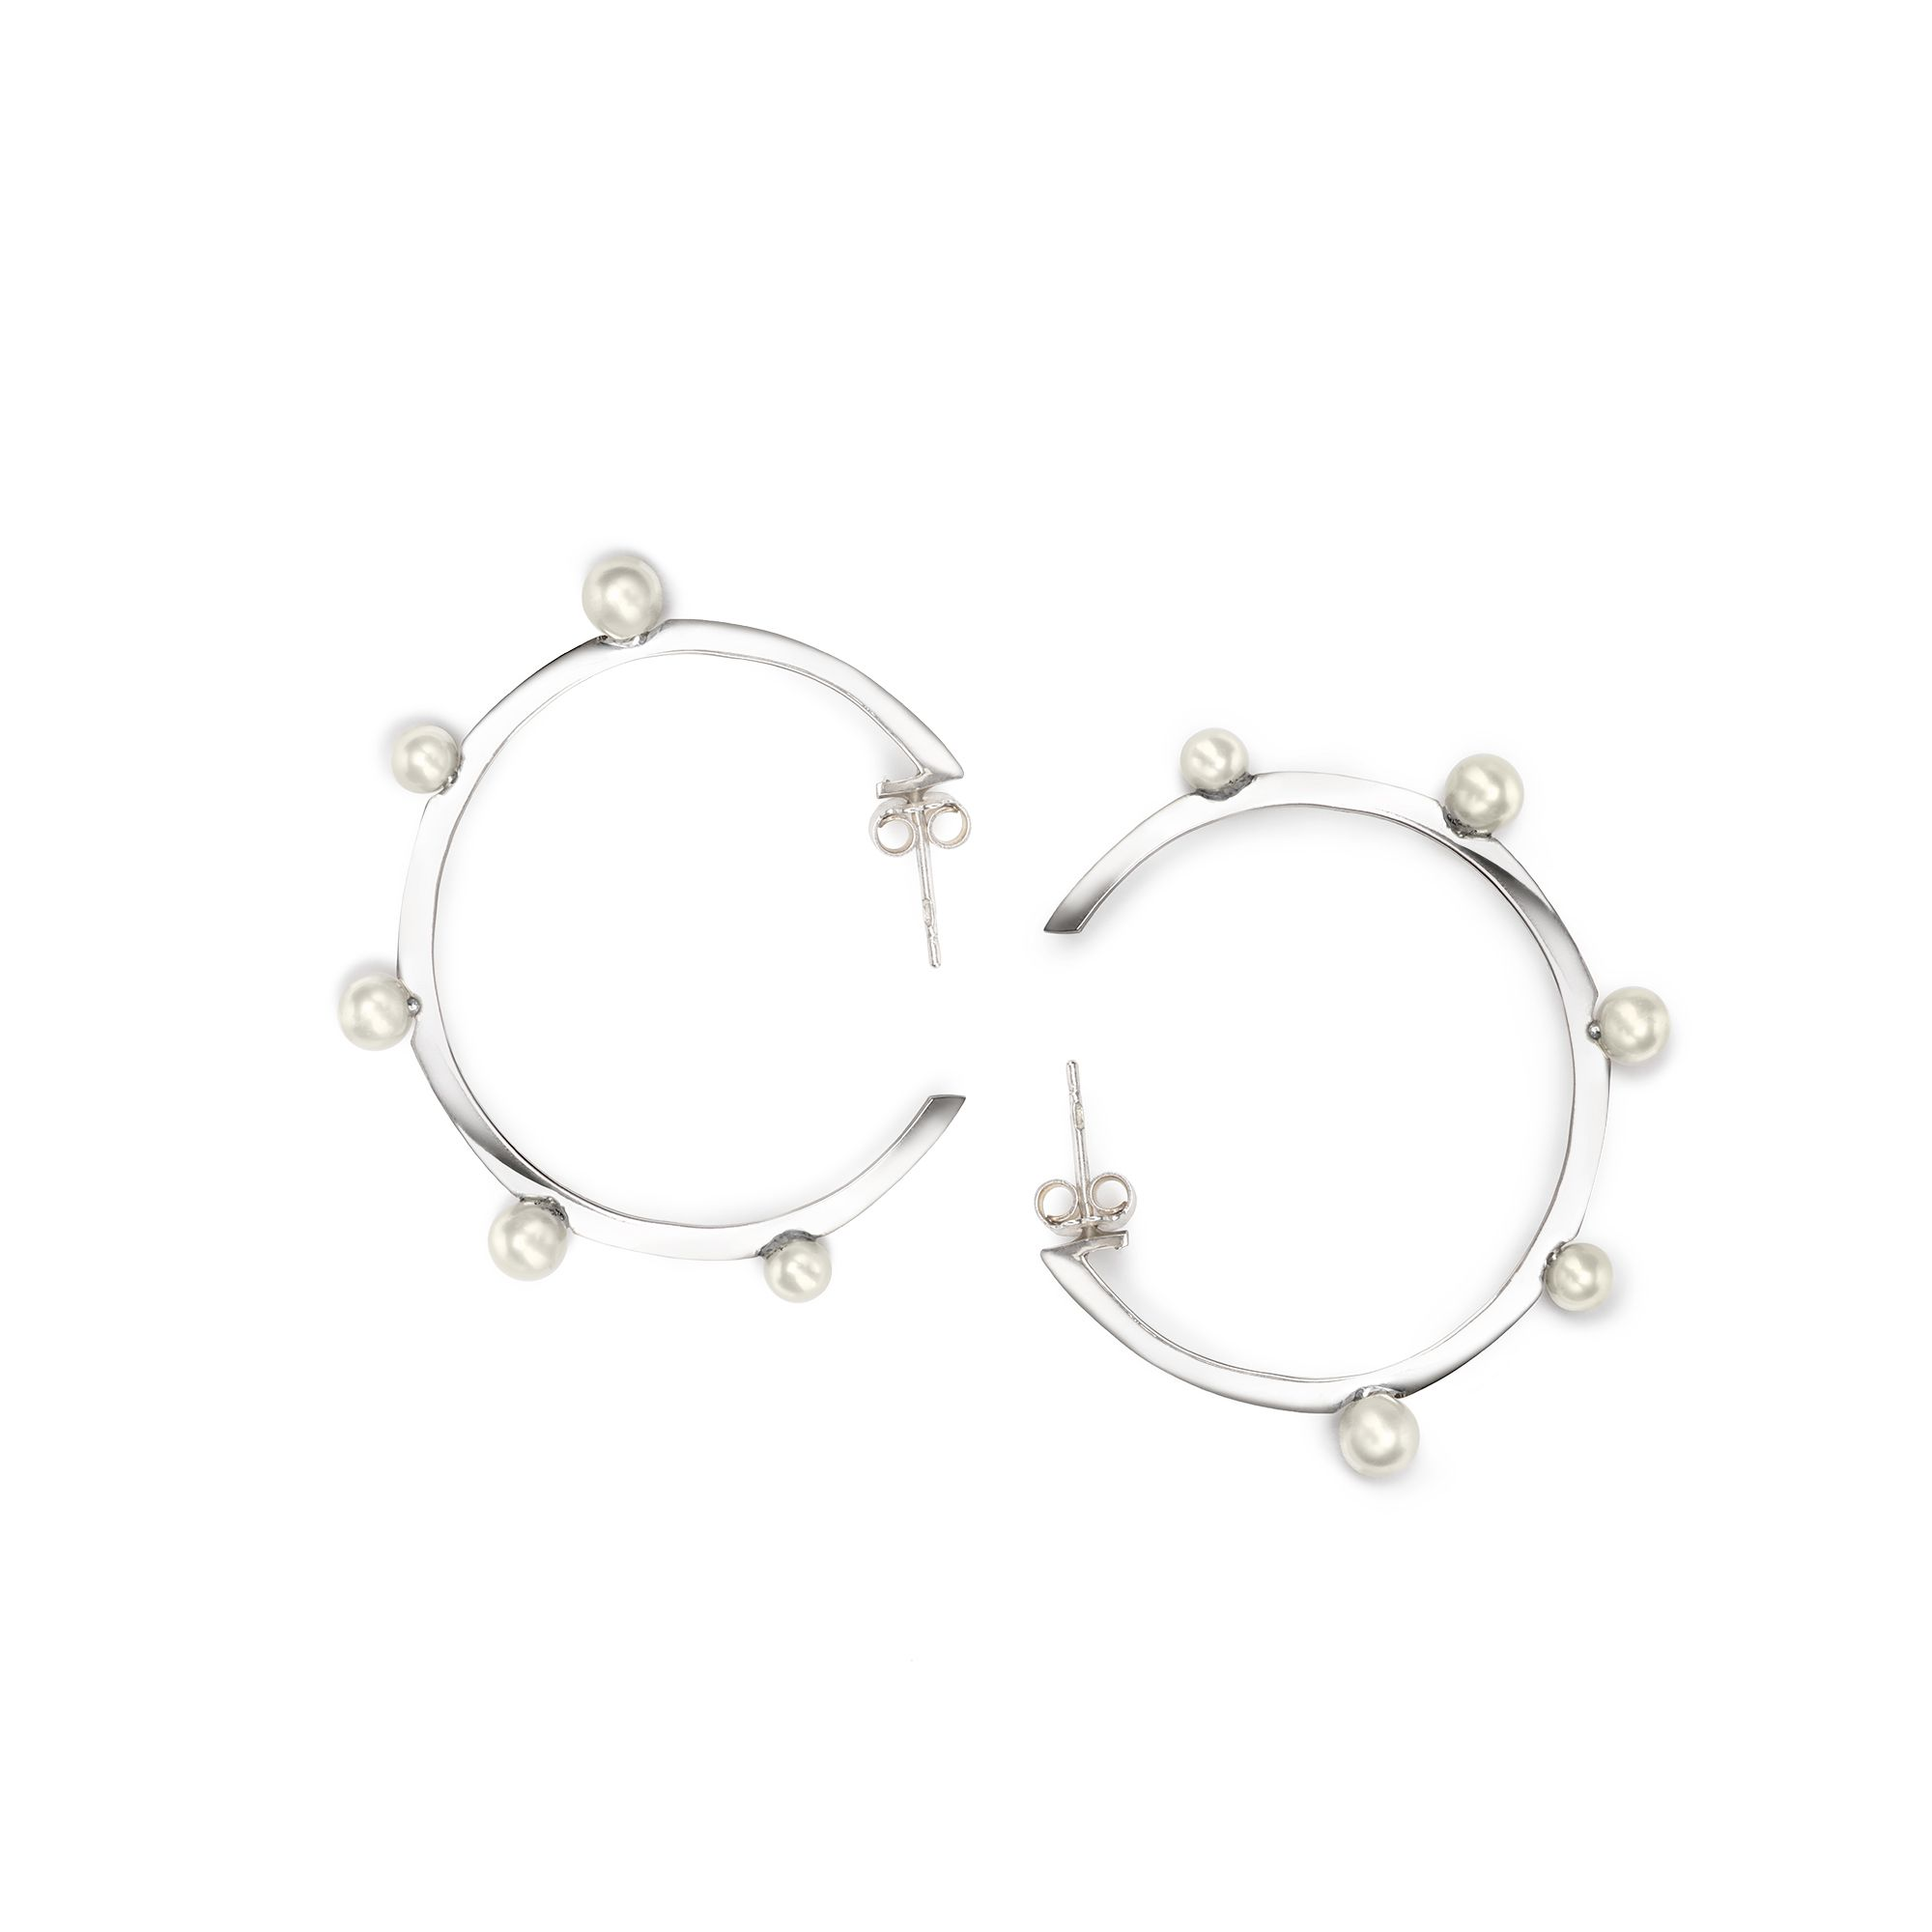 Hoop earrings with pearls Silver earrings with white pearls